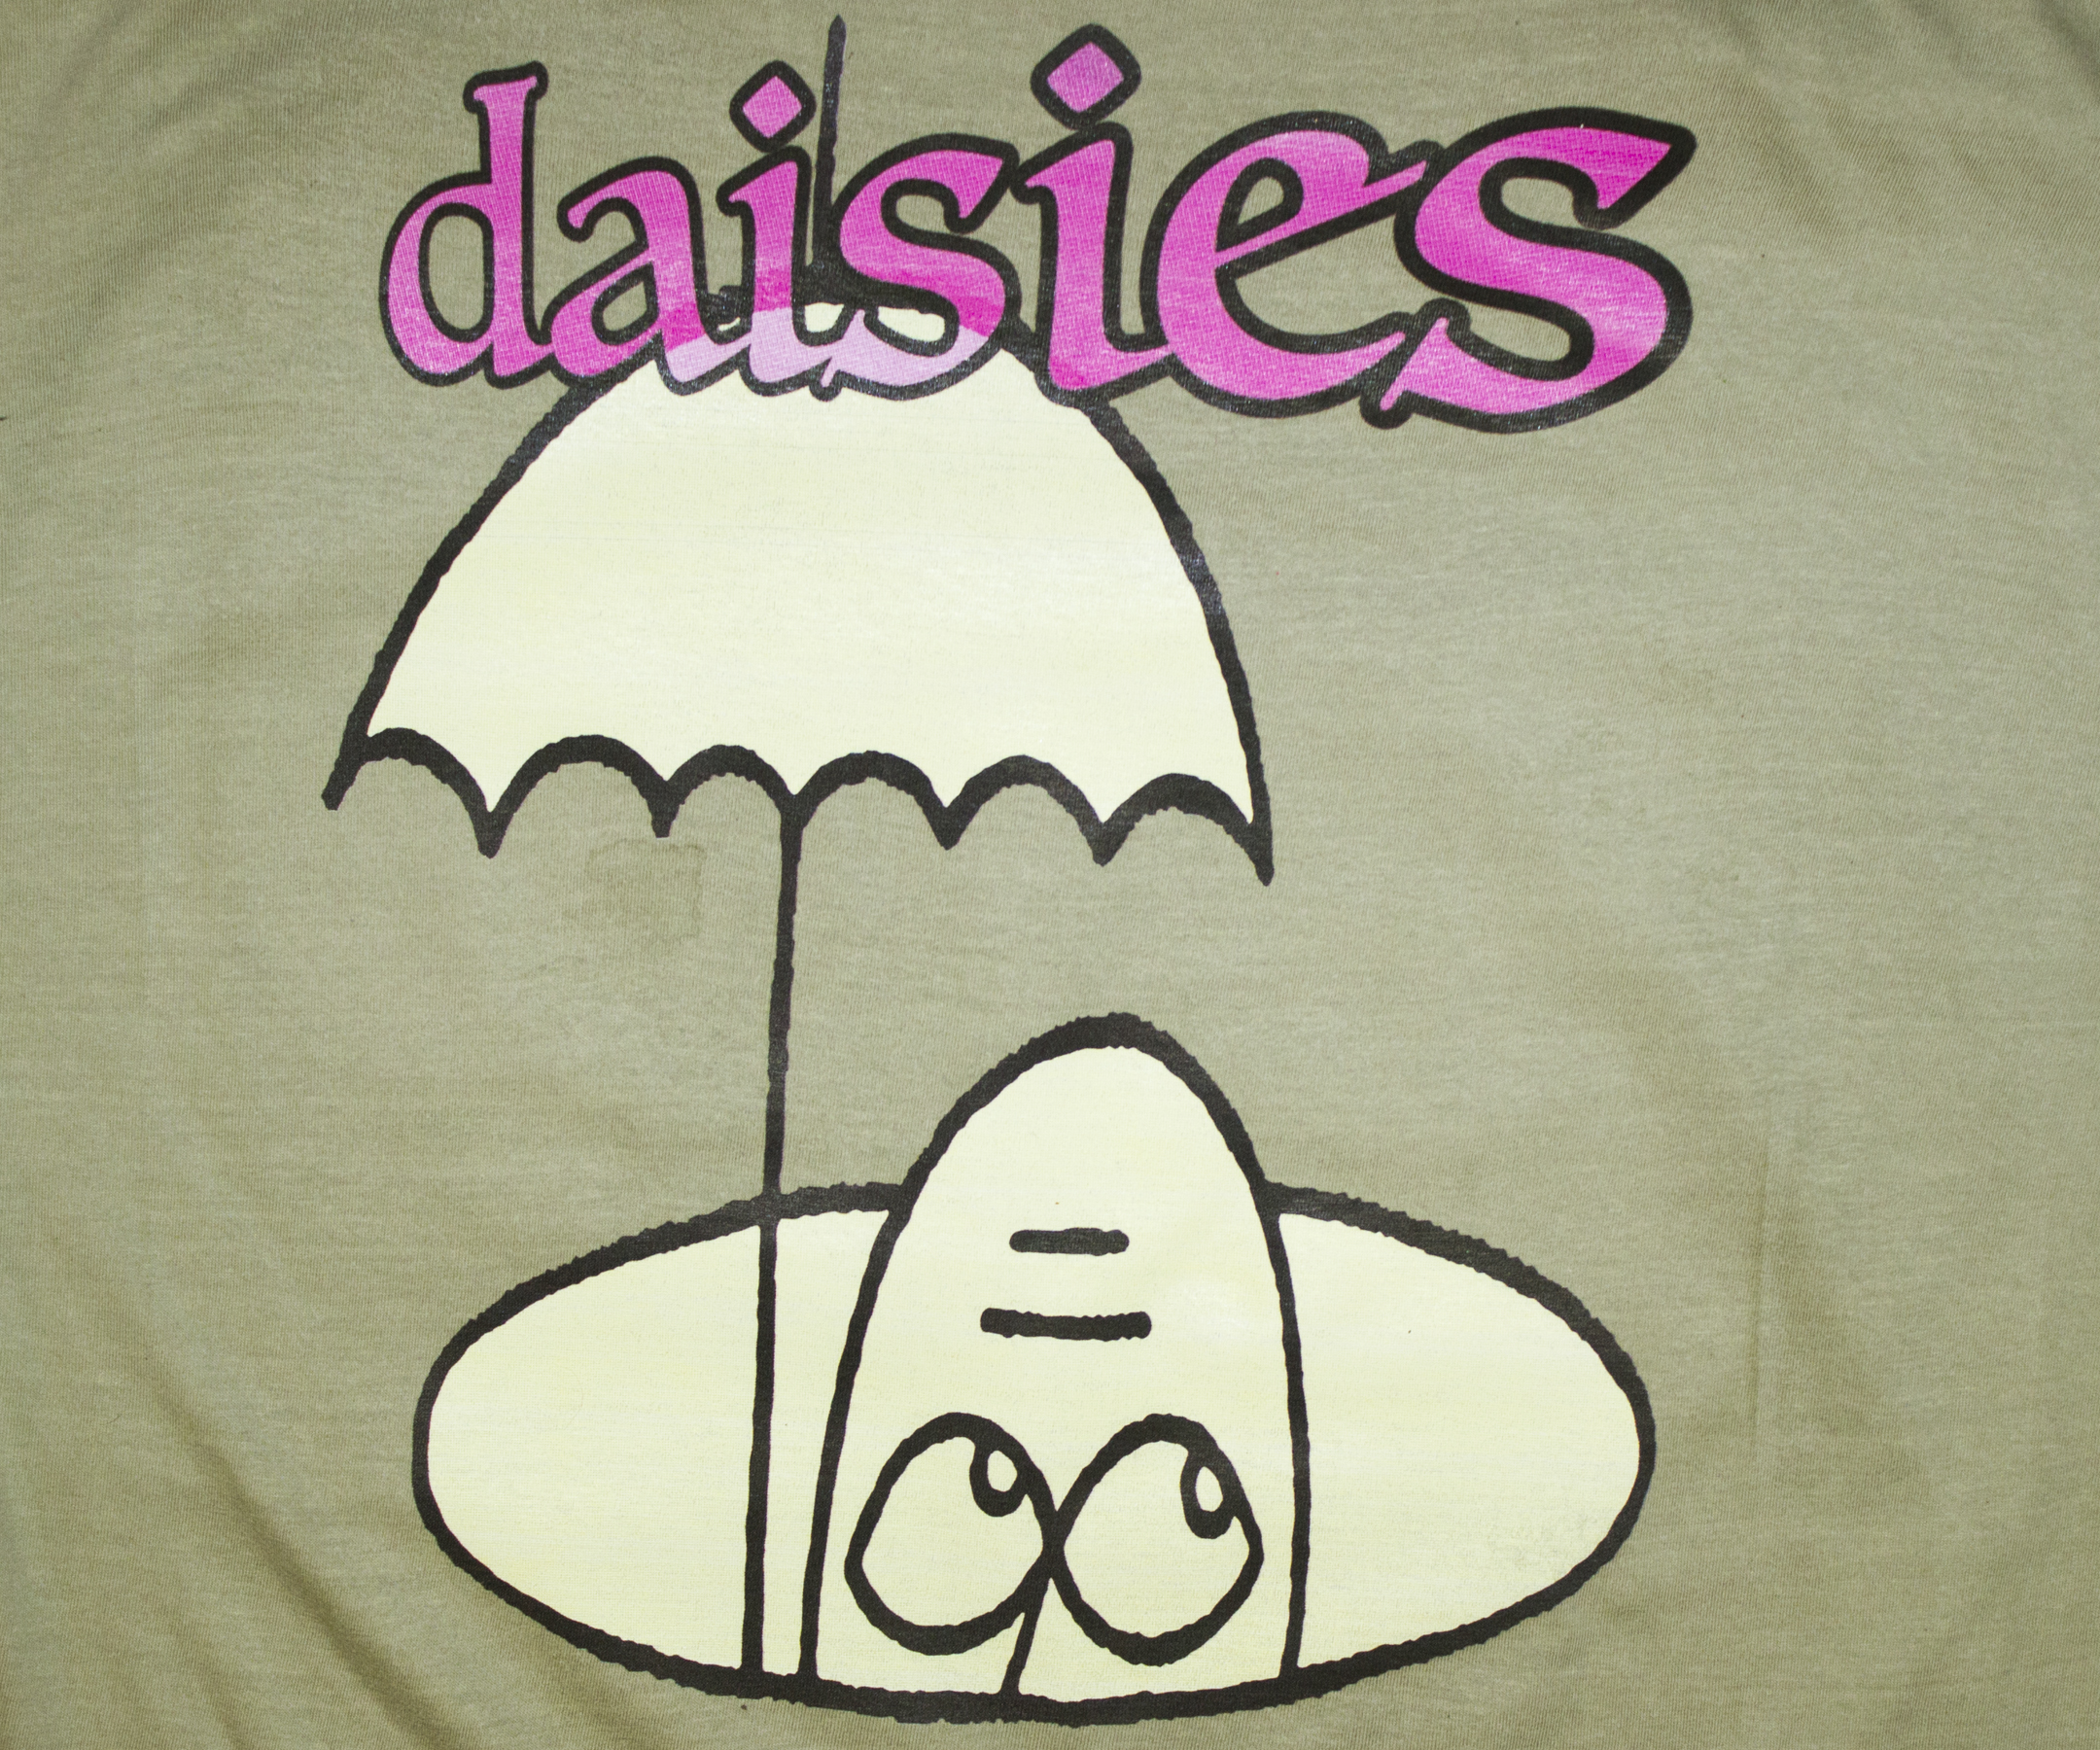 daisies in the studio with dj rap class underground waiting t shirt